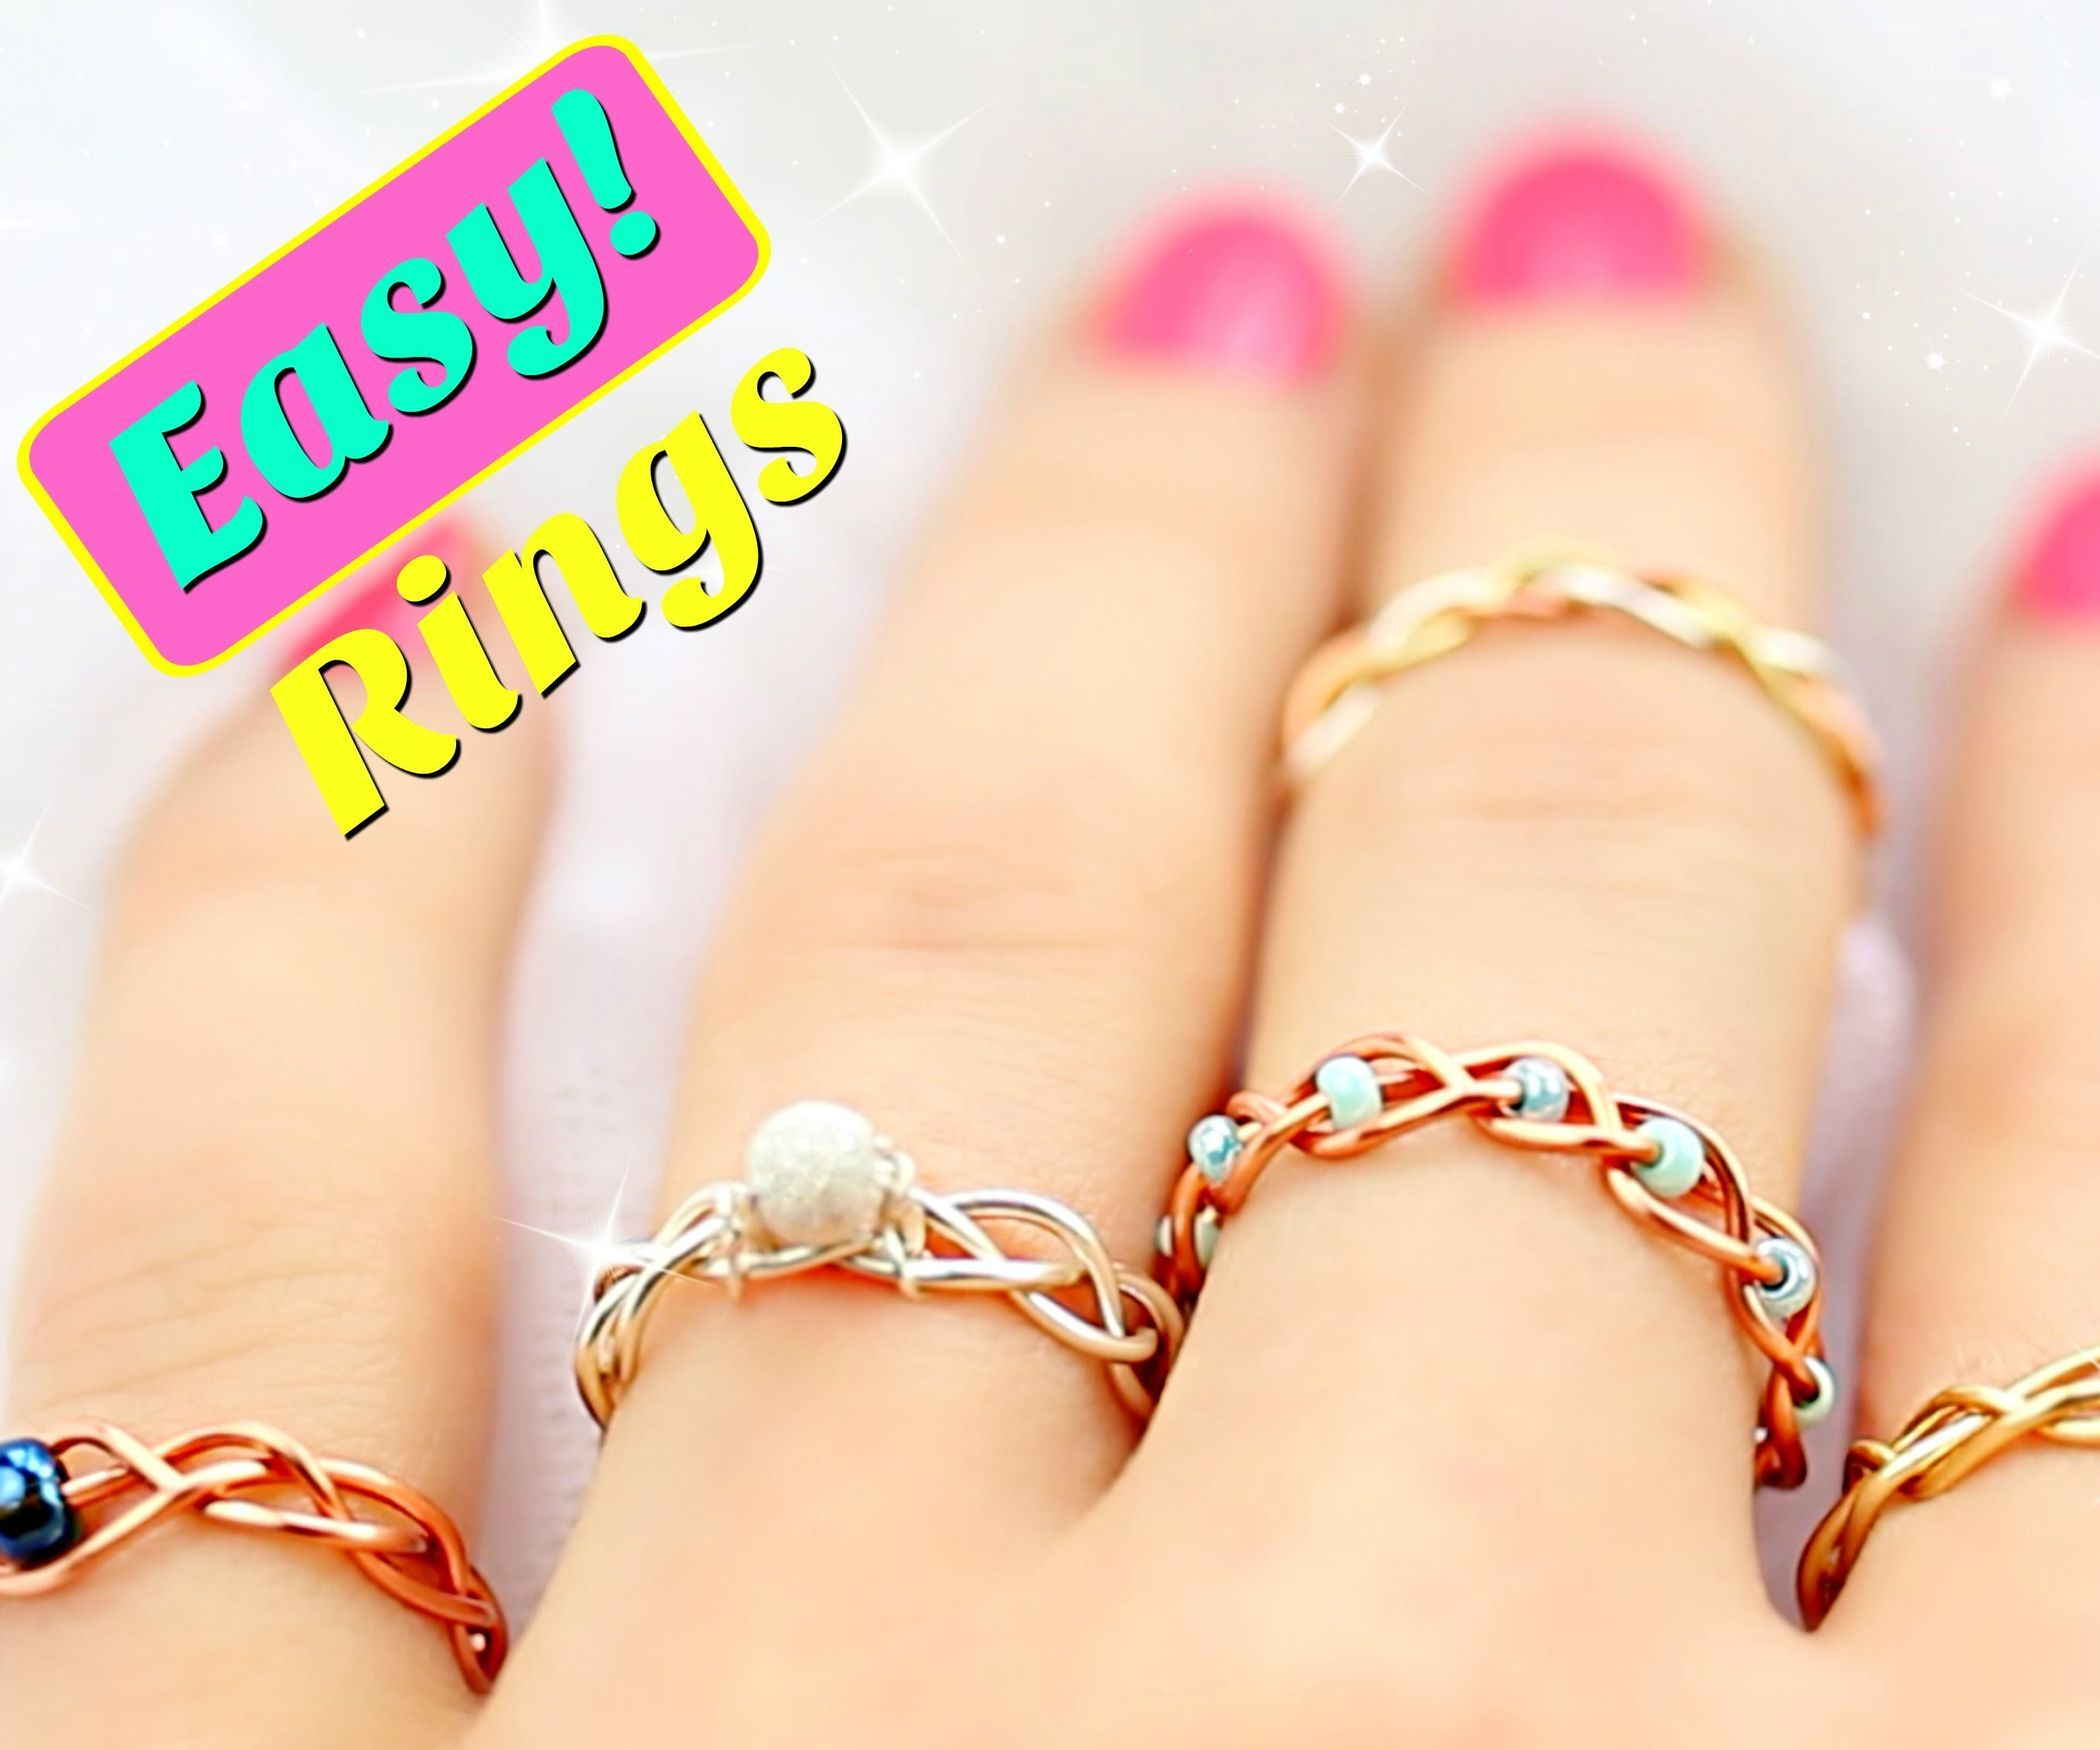 12 Easy Handmade Jewelry Ideas - A Beautiful Mess